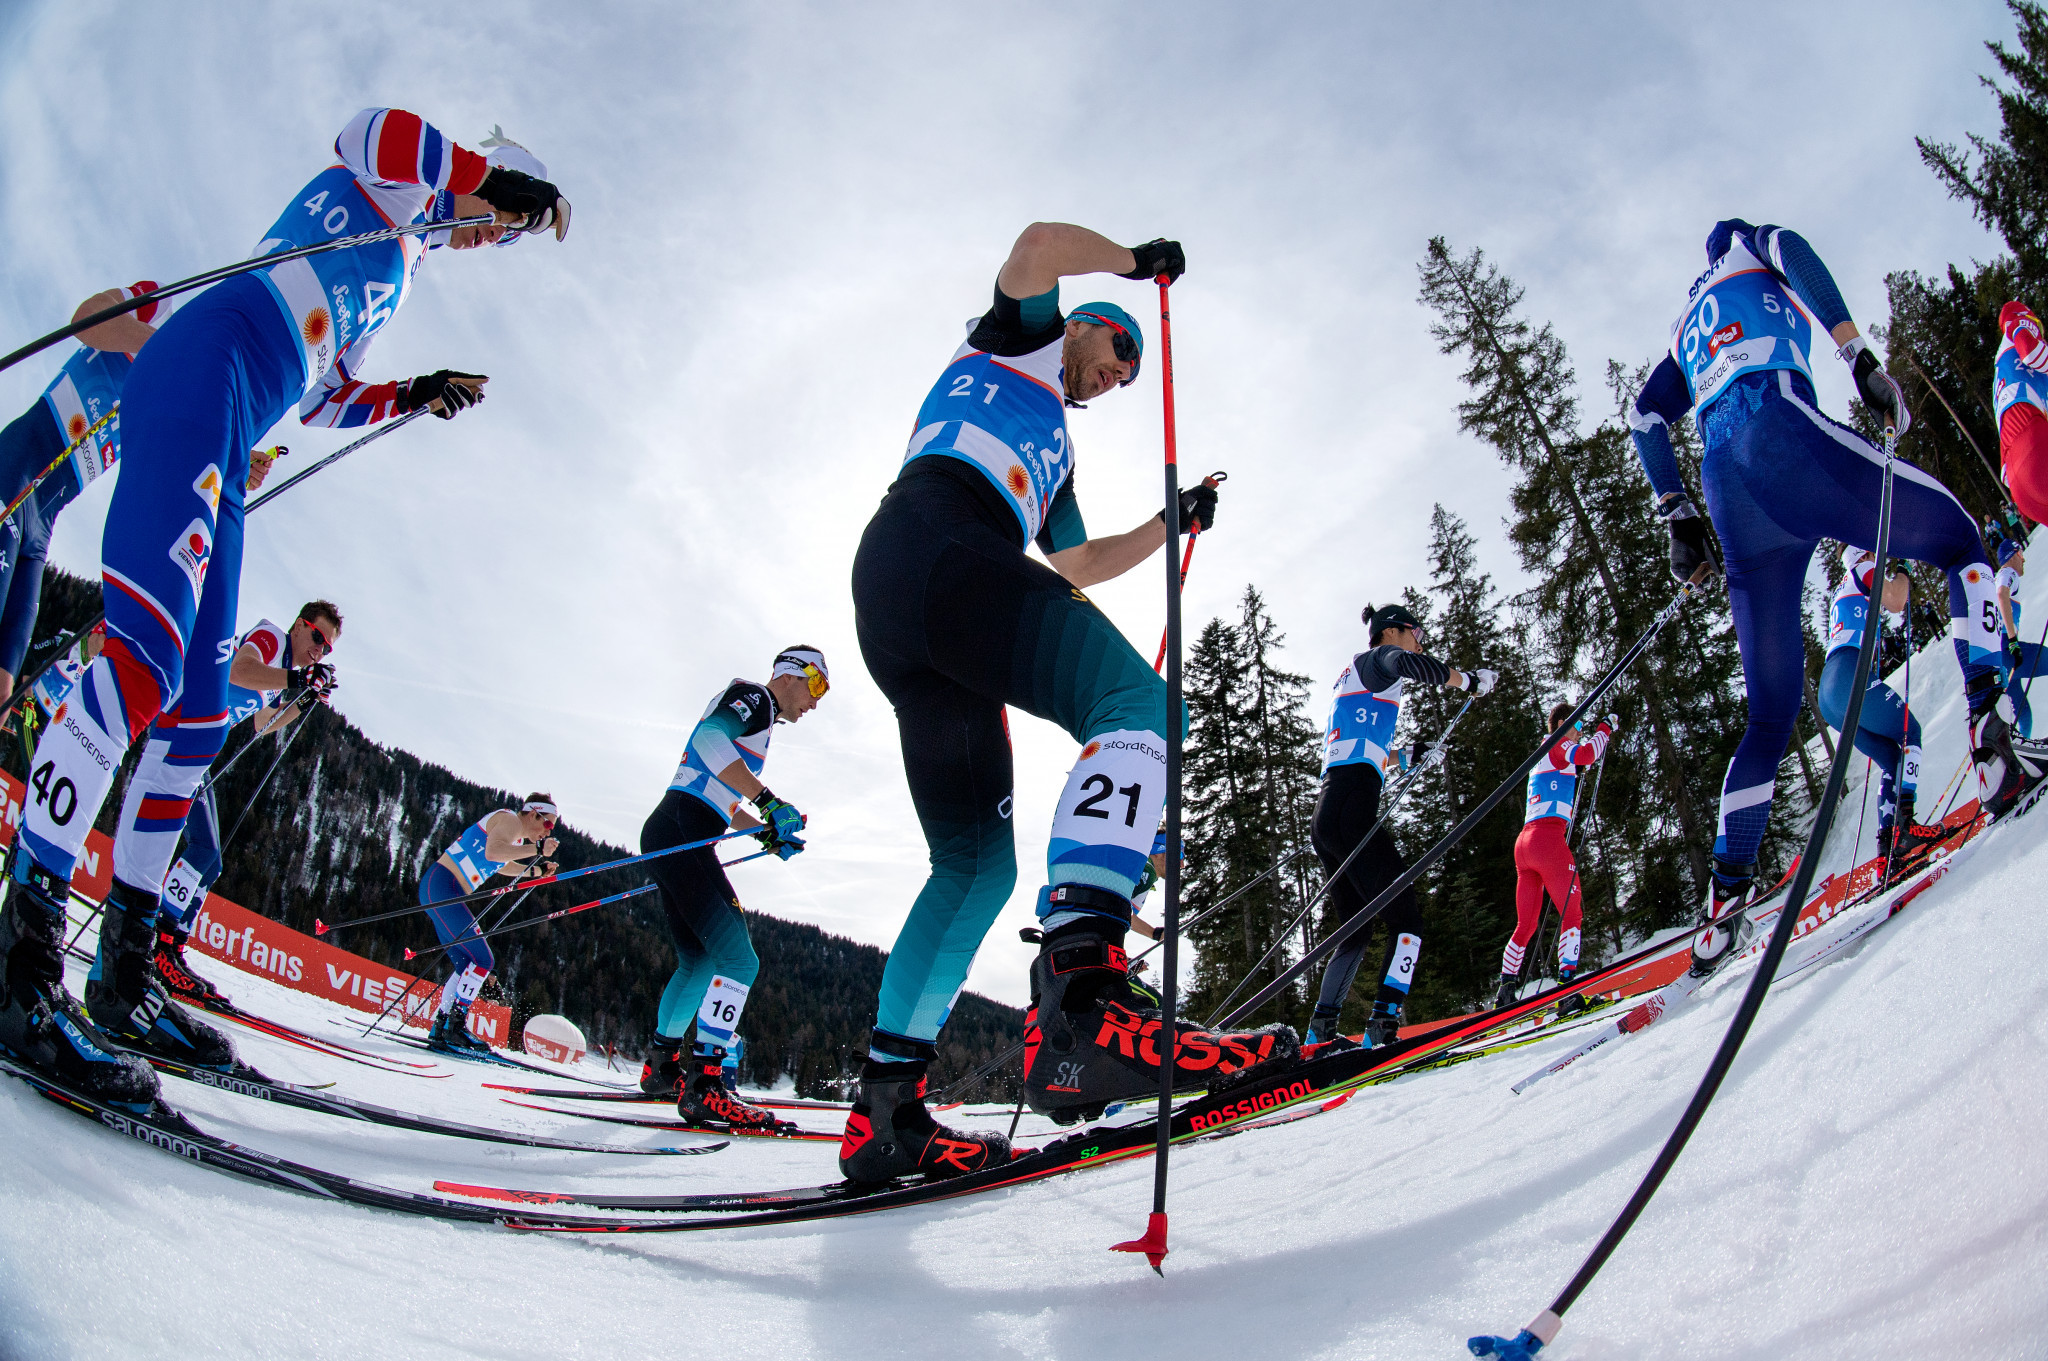 This year's edition of the FIS Nordic World Ski Championships was held in Seefeld in Austria ©Getty Images